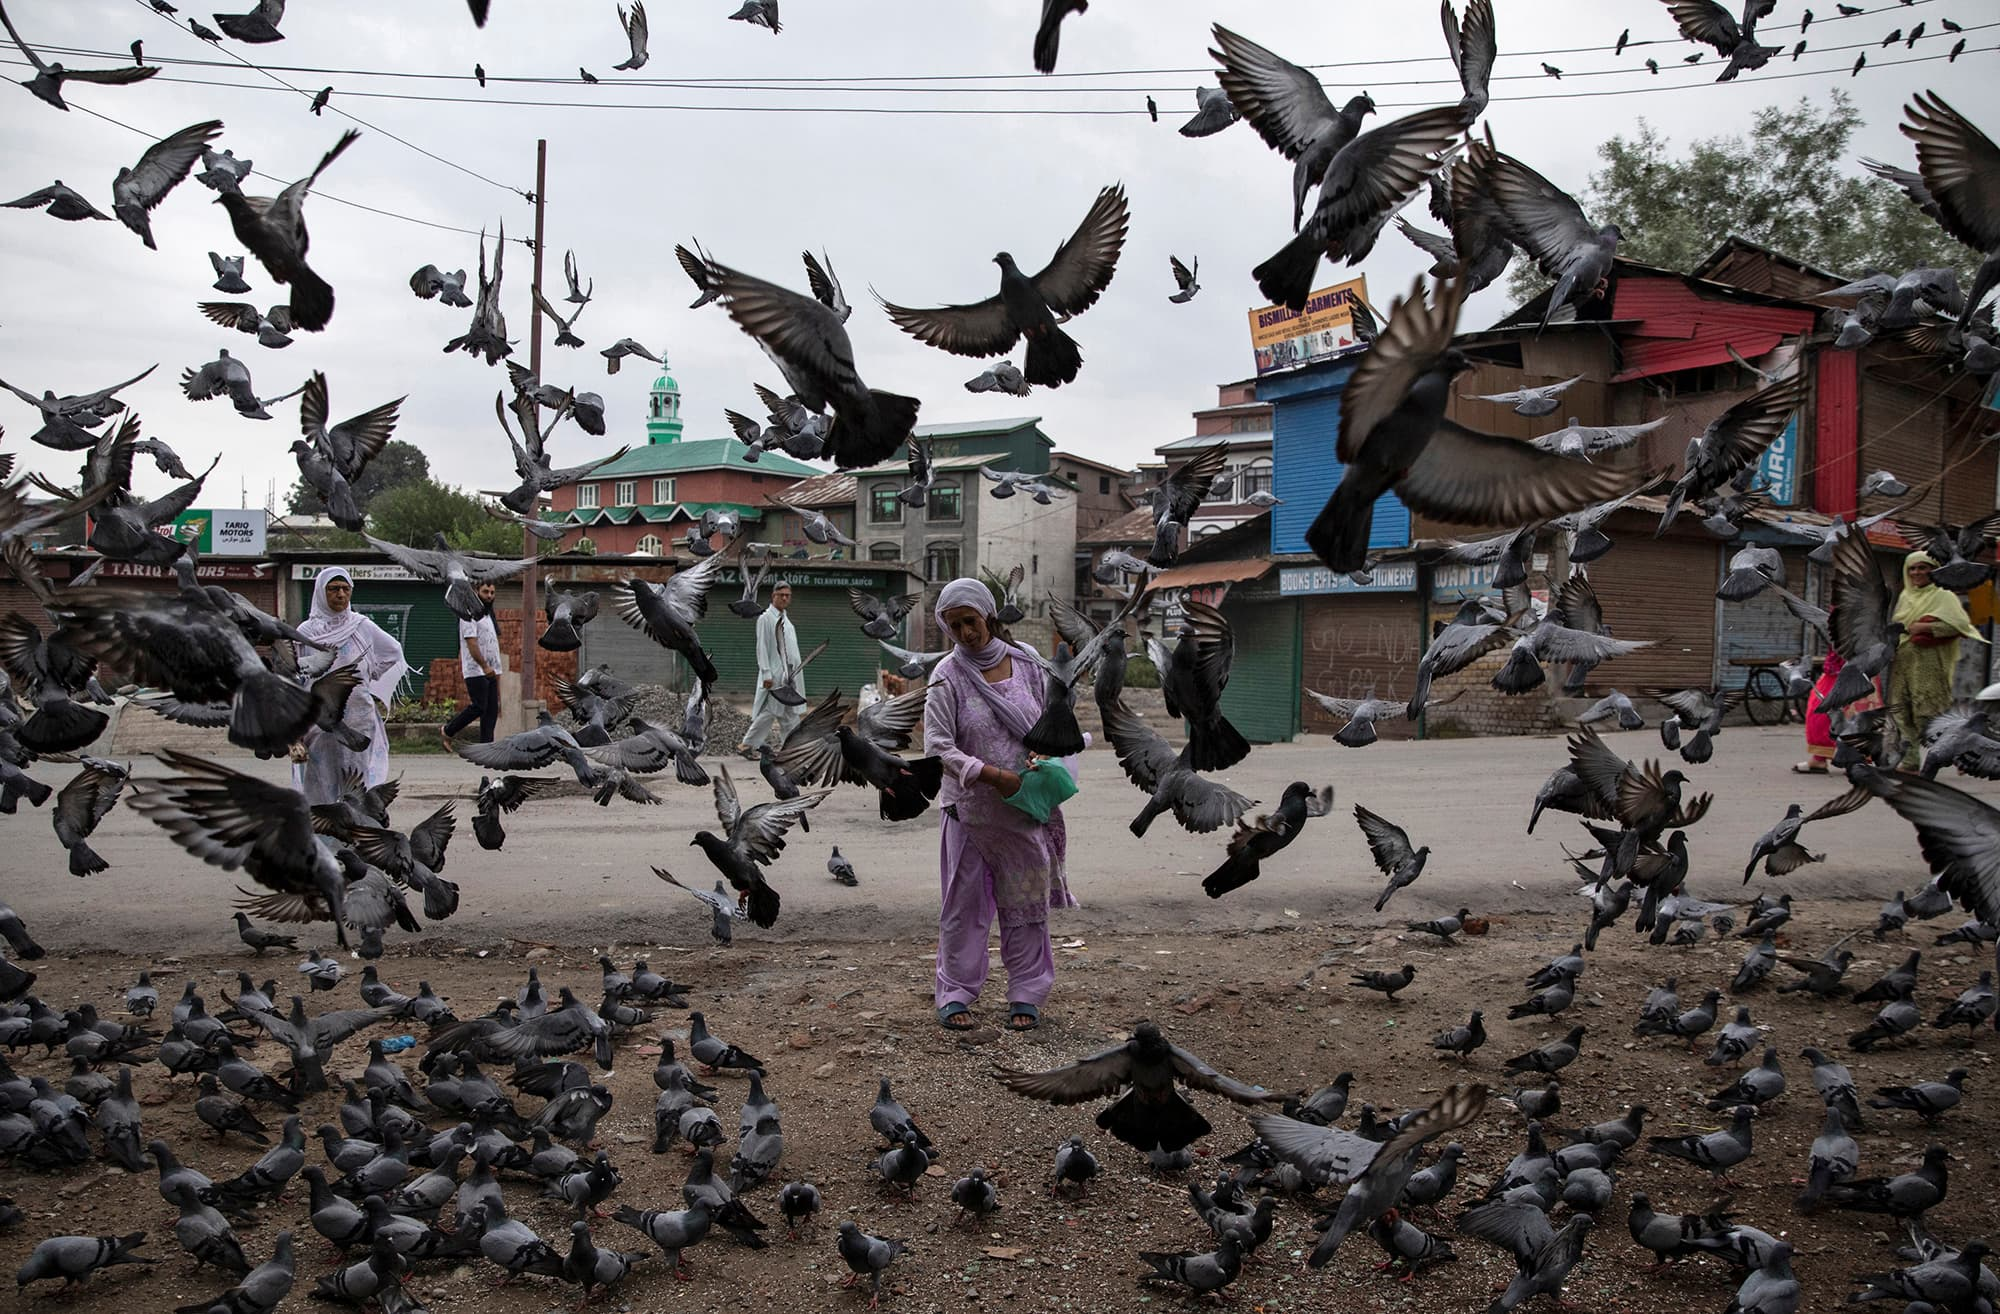 A Kashmiri woman feeds pigeons on a street during curfew in Srinagar. ─ Reuters